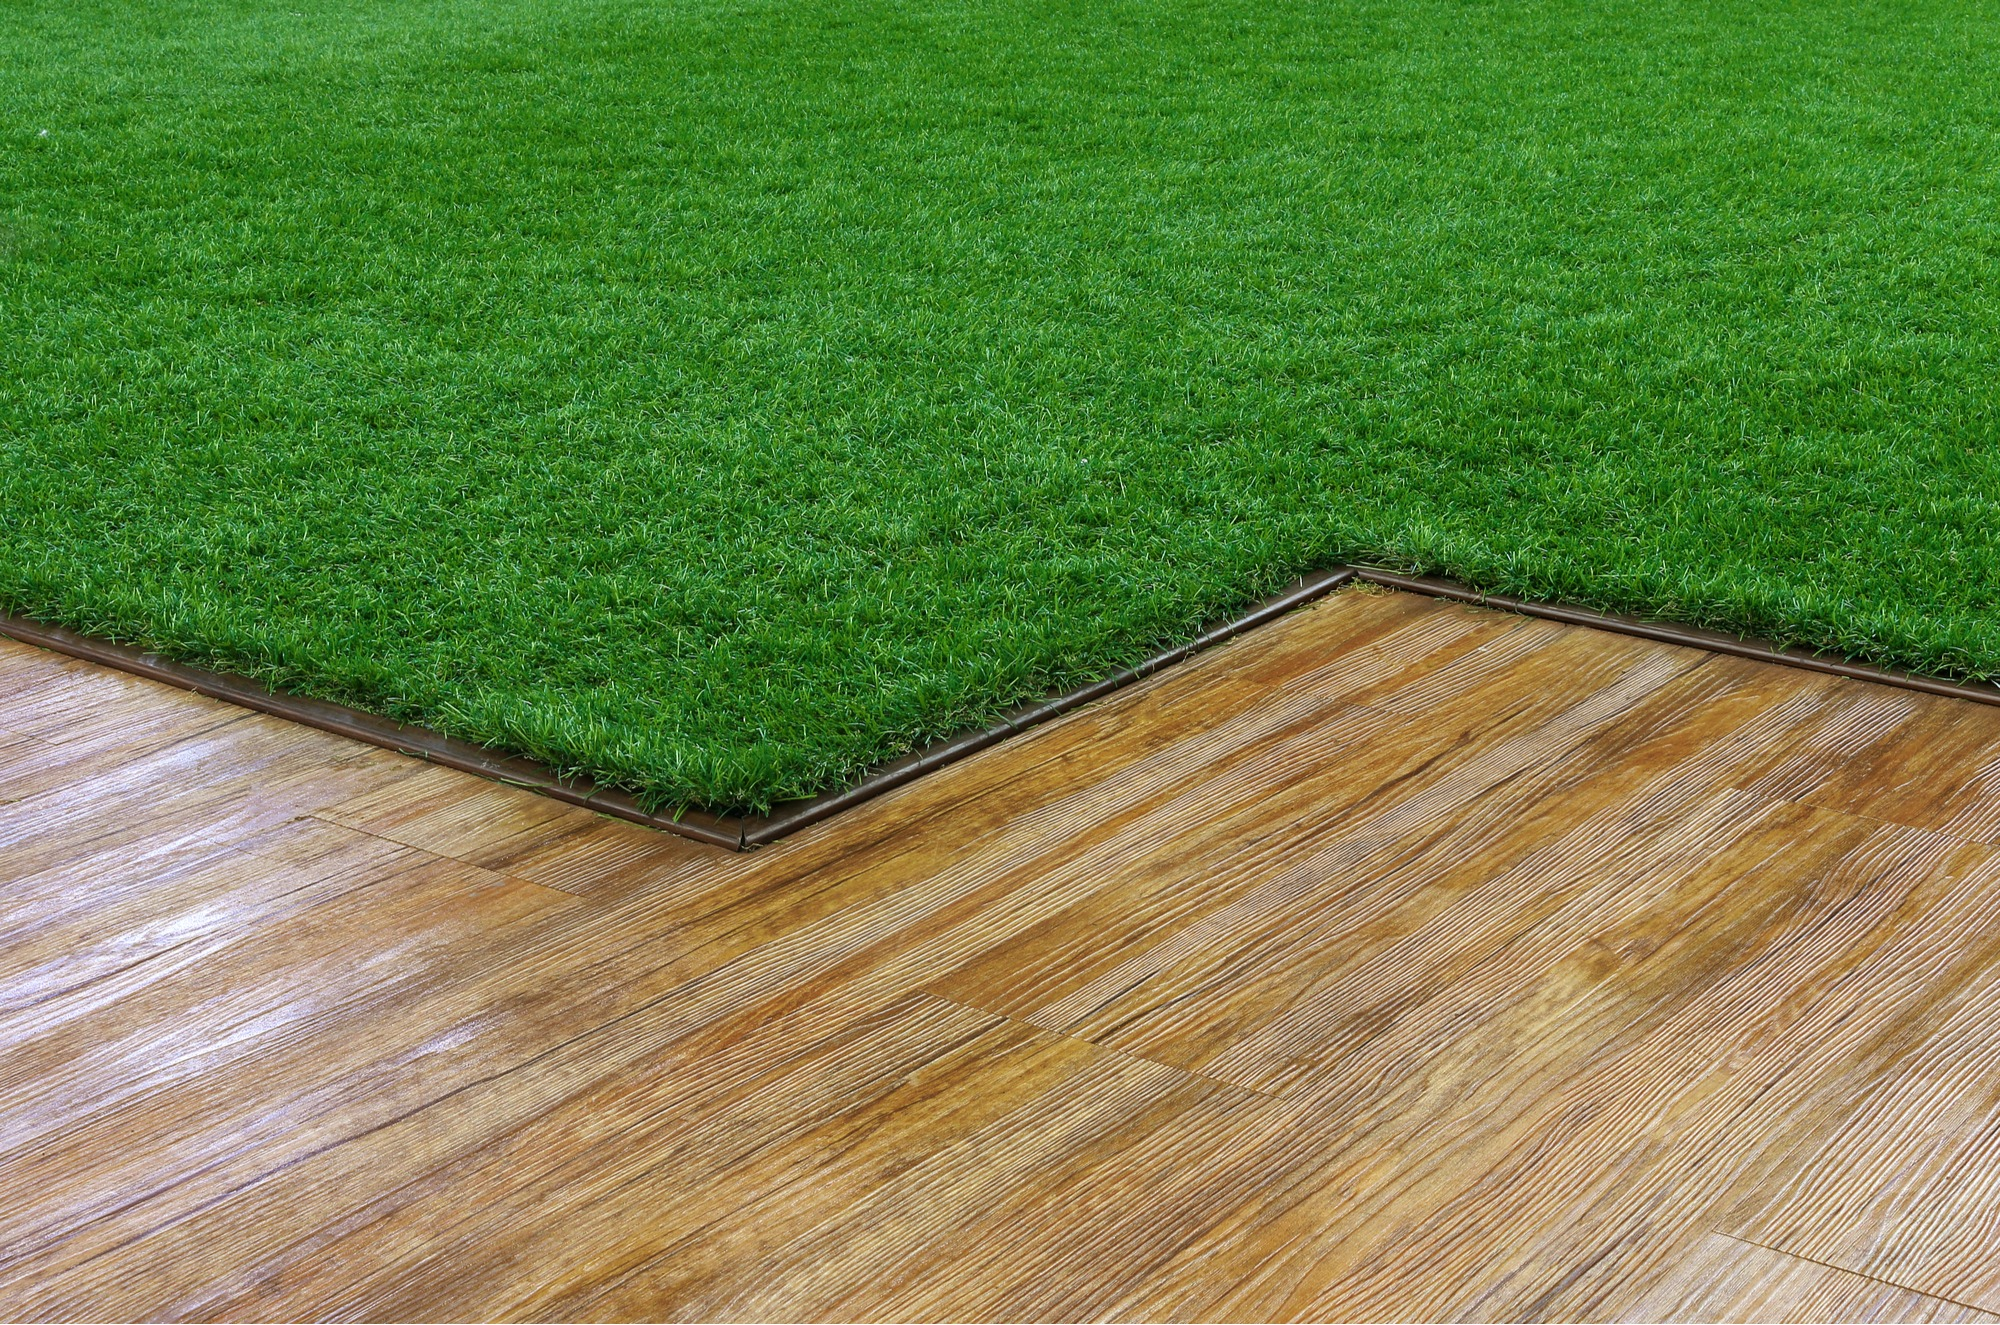 How to Prepare Your Artificial Turf Lawn for Winter